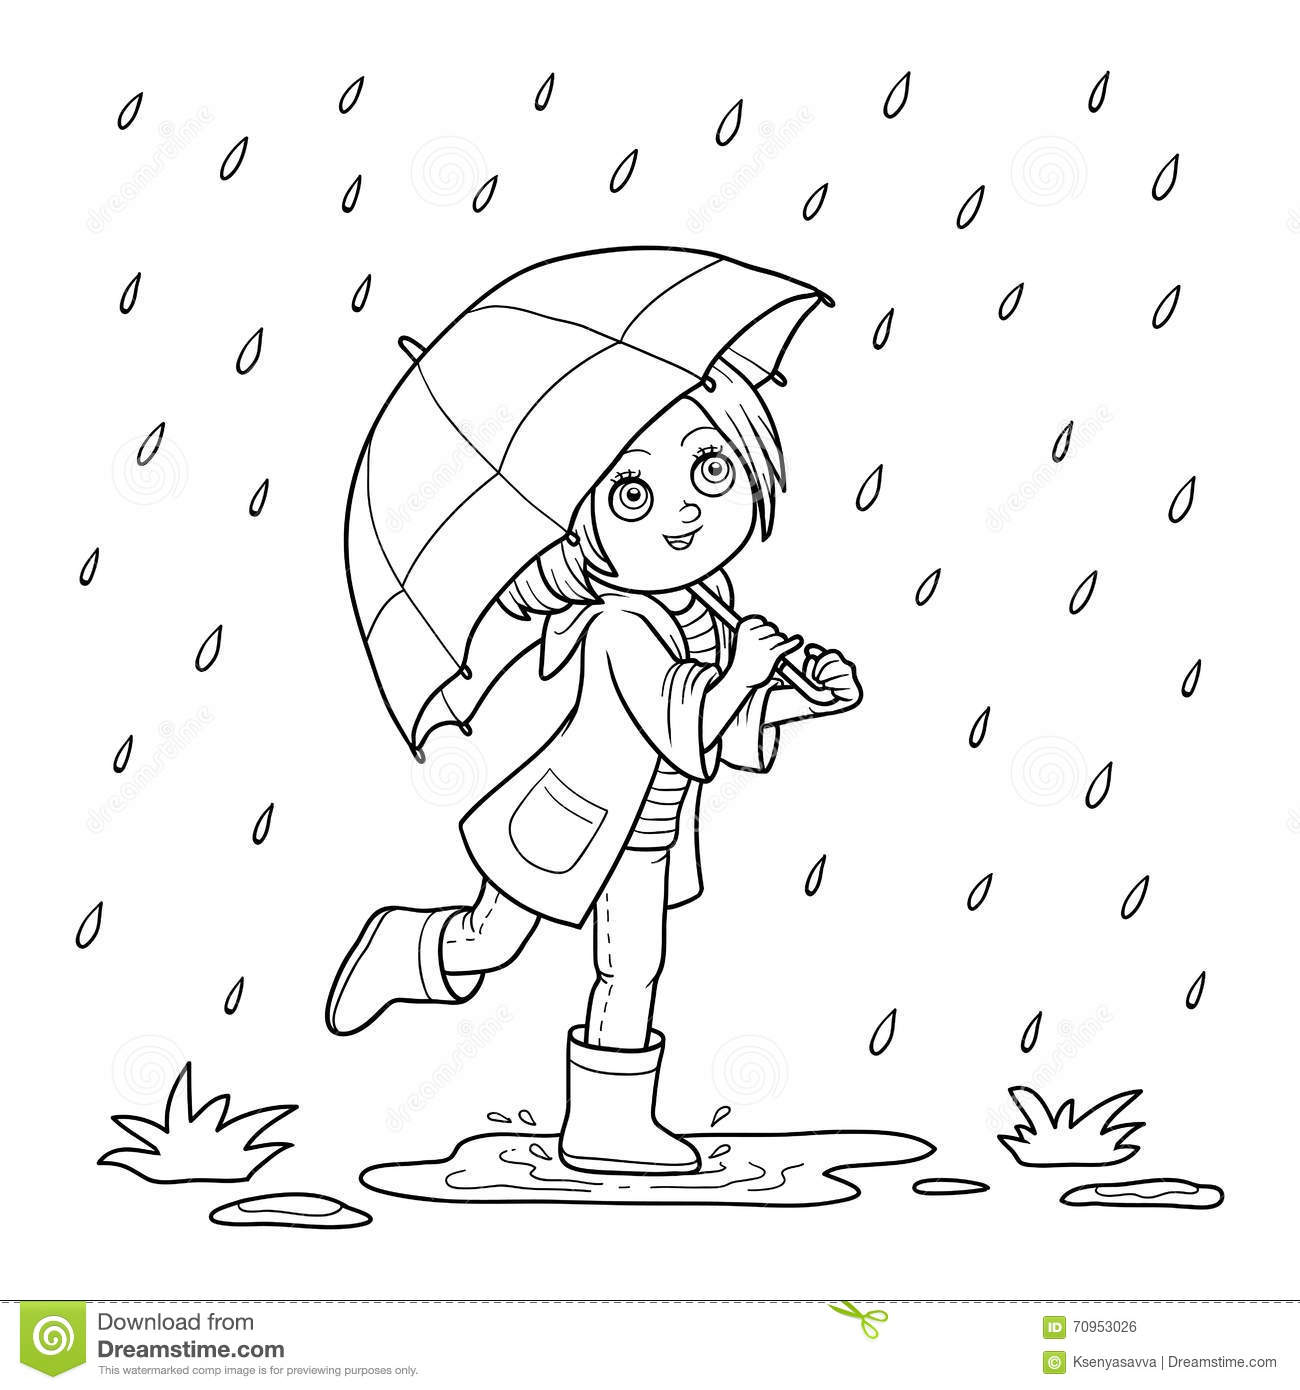 Its Raining Pouring Coloring Sheet Pages Sketch Coloring Page